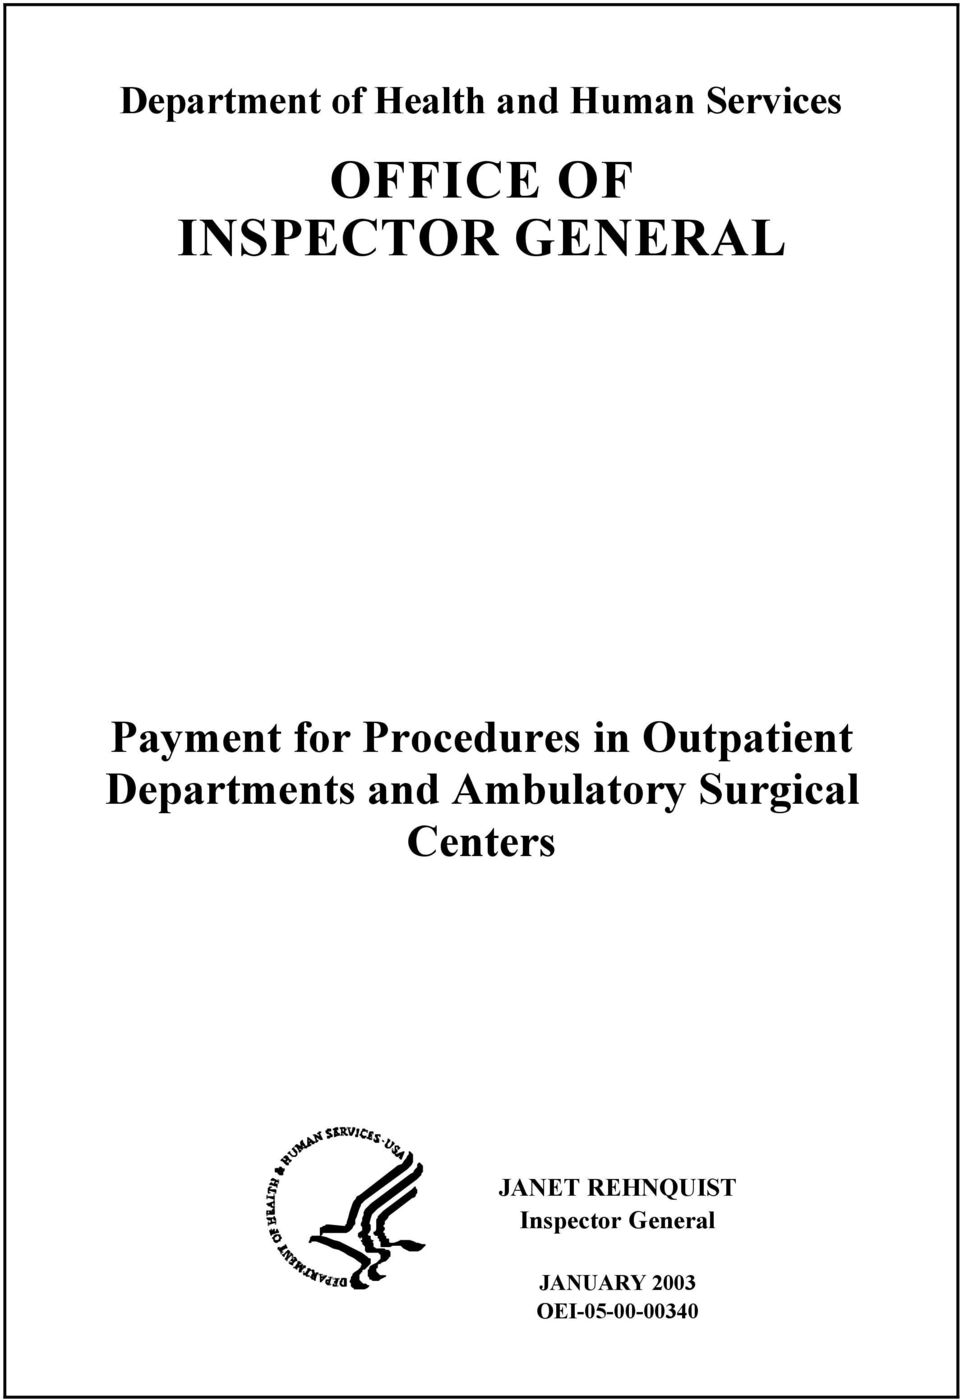 Outpatient Departments and Ambulatory Surgical